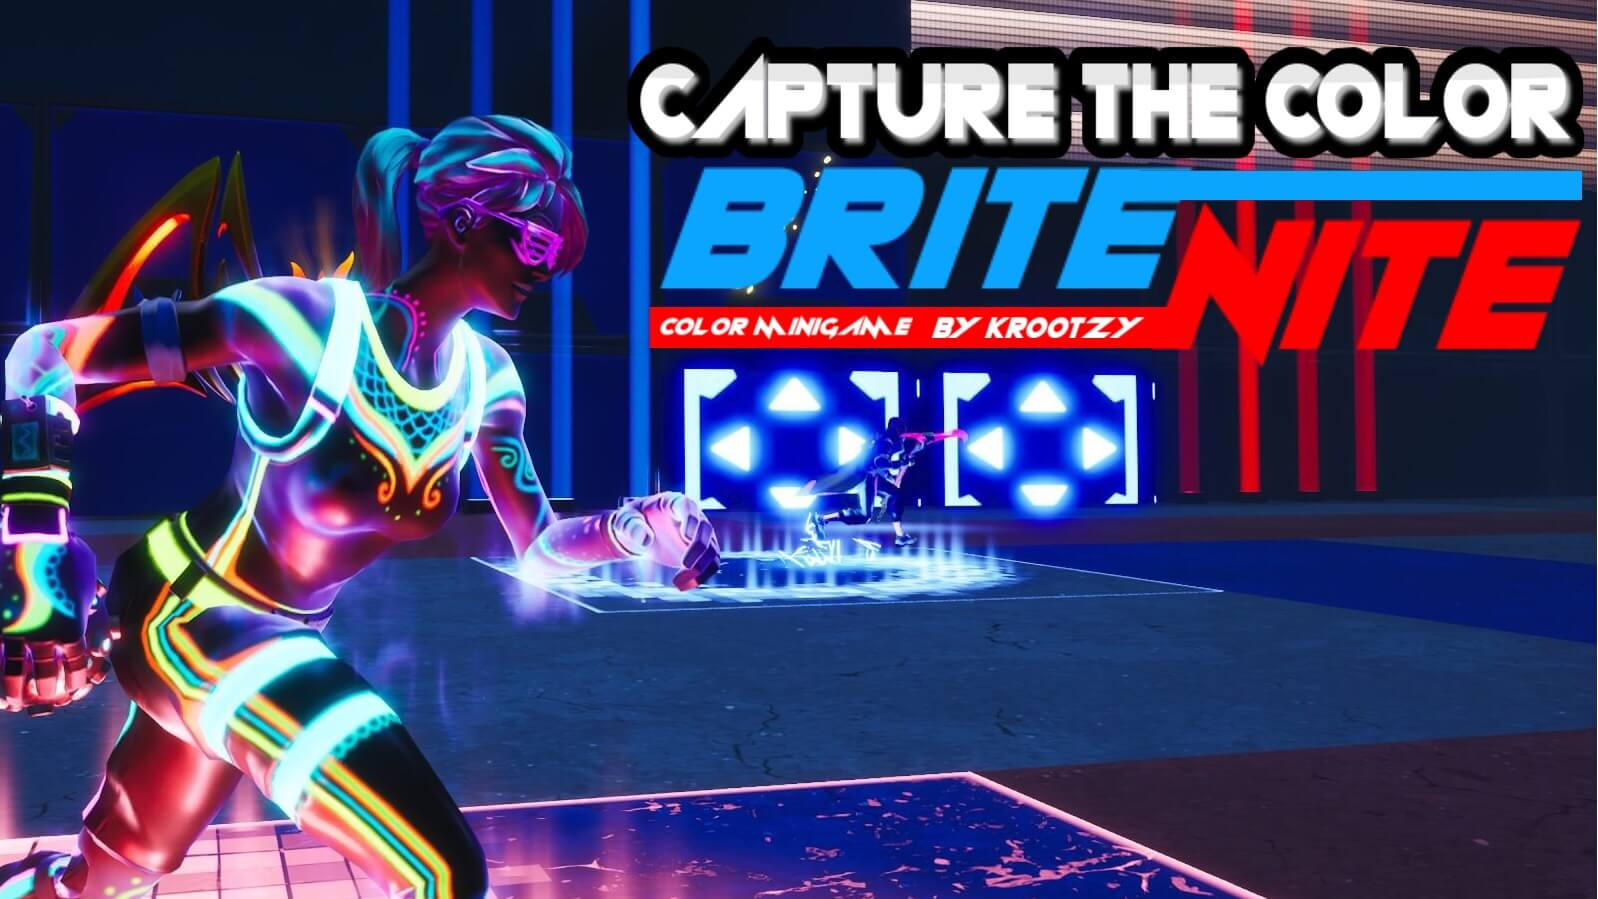 CAPTURE THE COLOR: BRITE NITE!